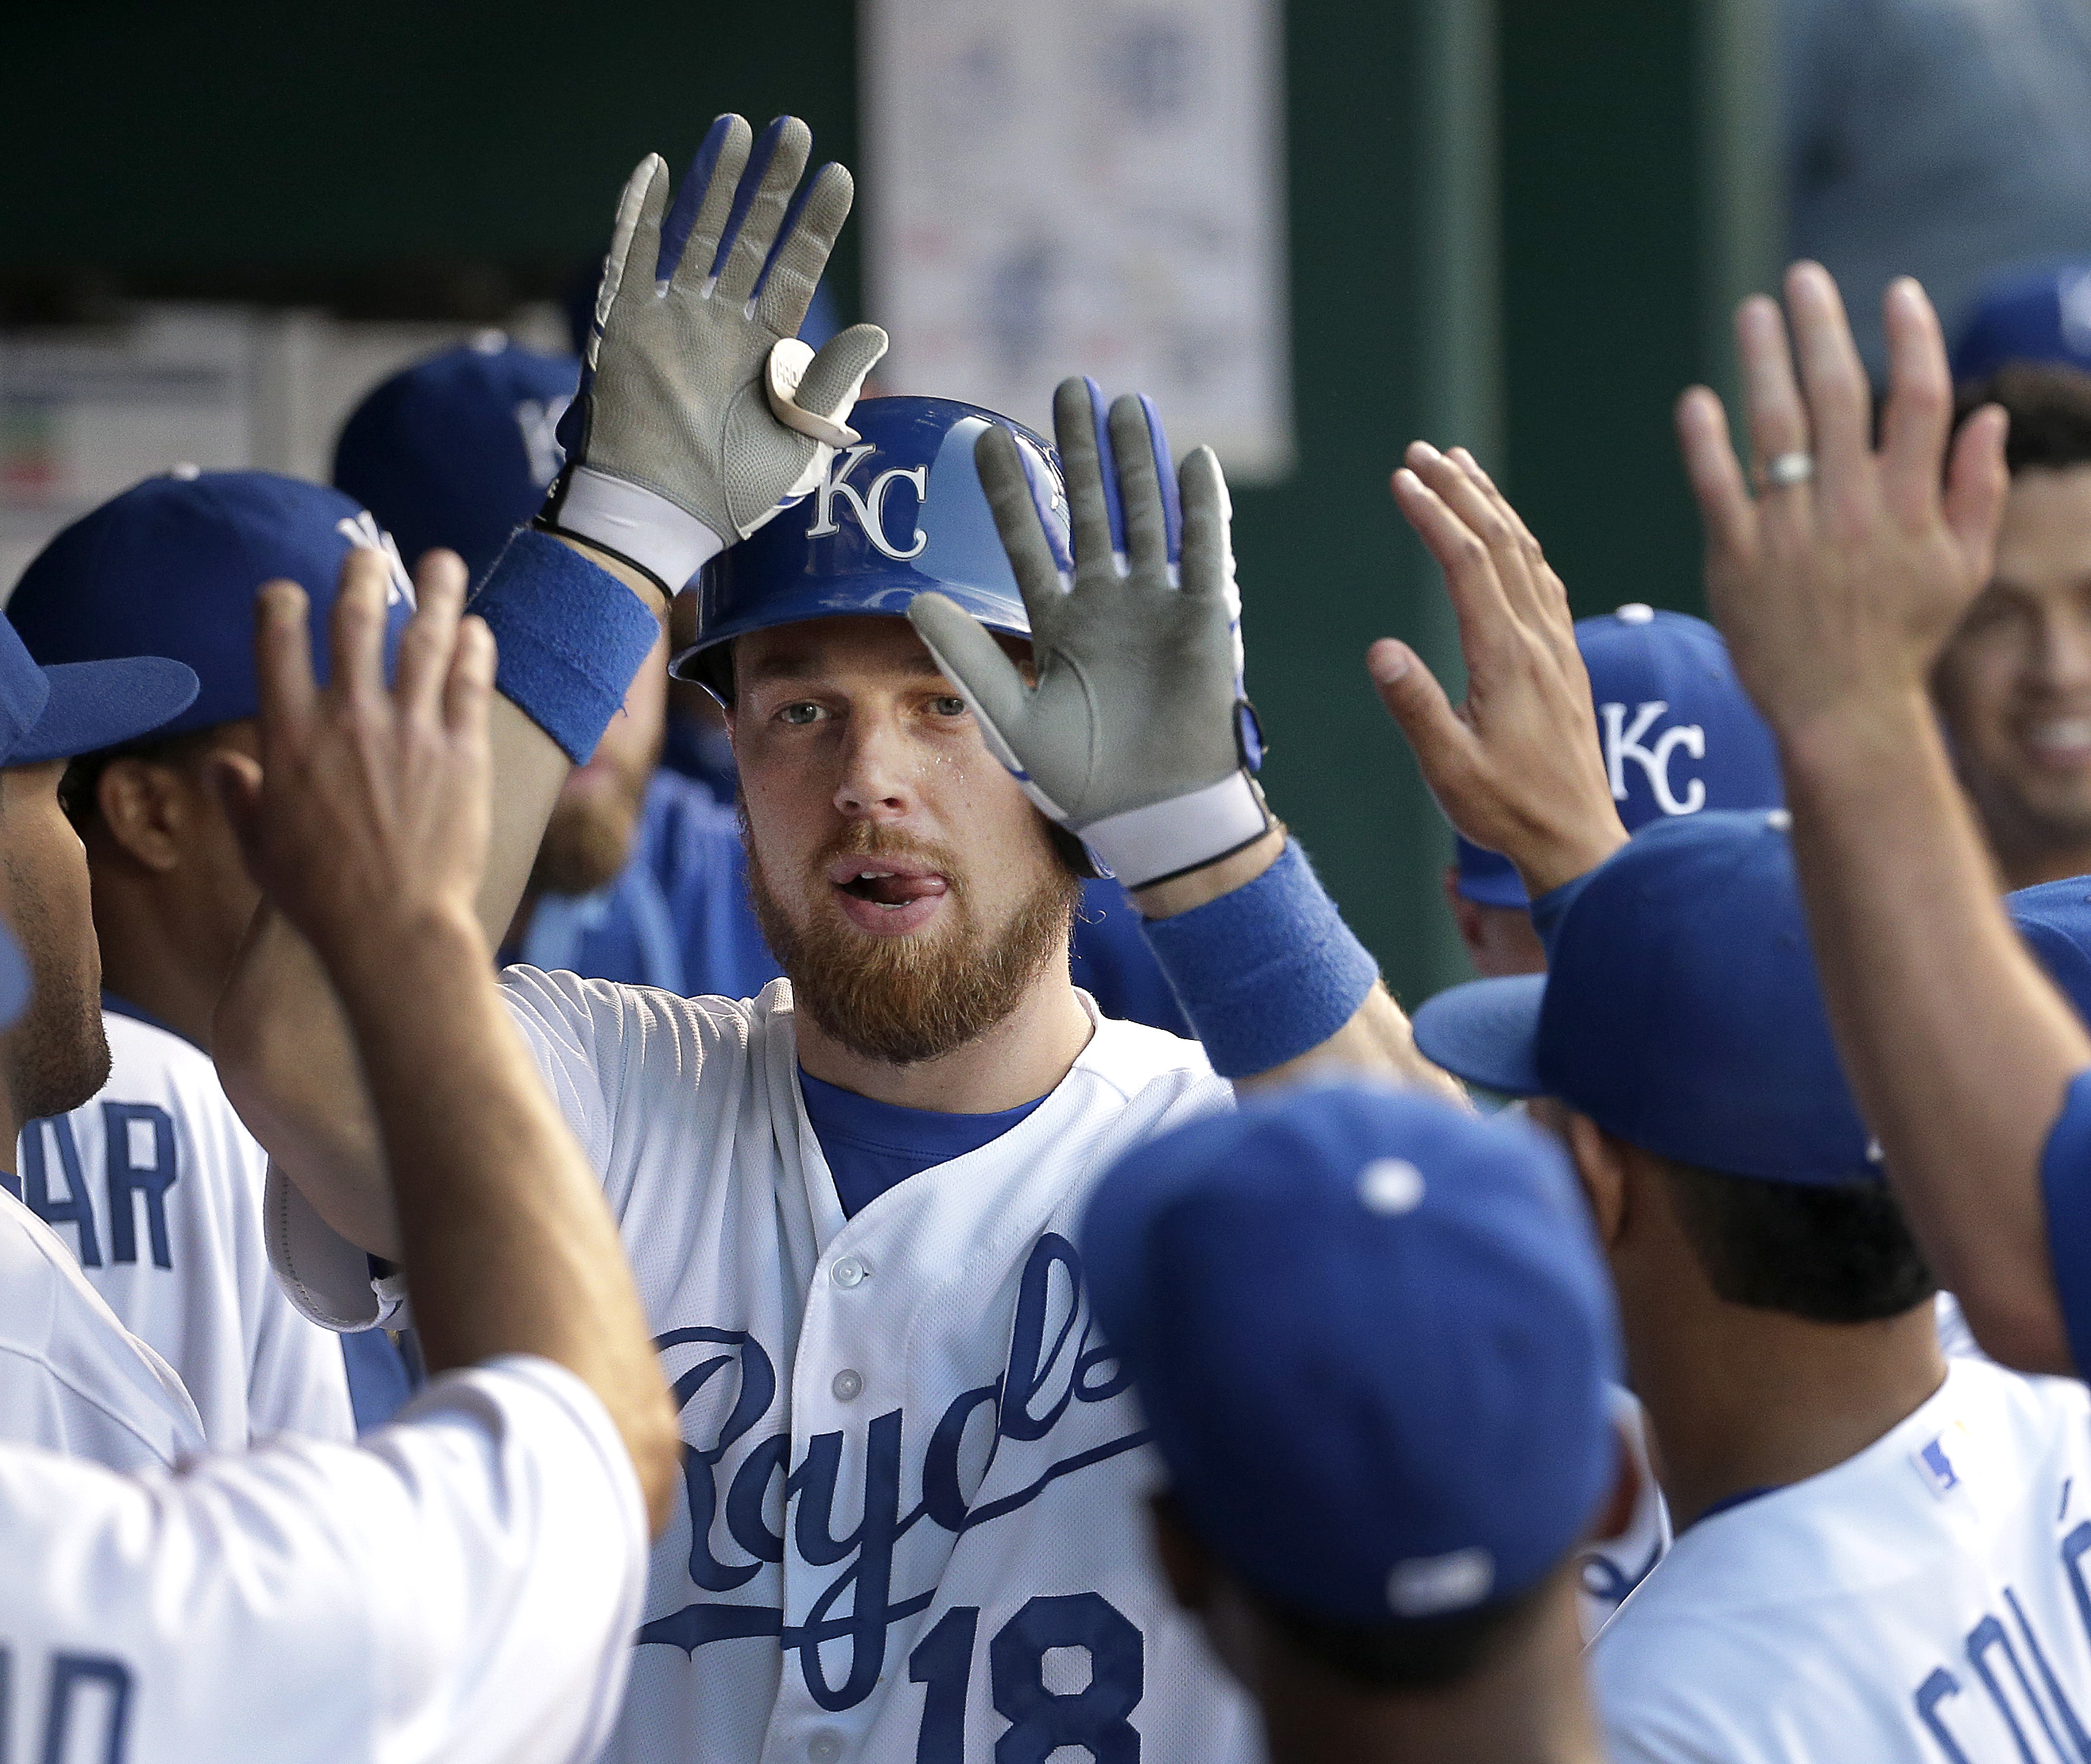 Kansas City Royals' Ben Zobrist celebrates in the dugout after hitting a solo home run during the first inning of a baseball game against the Detroit Tigers Wednesday, Sept. 2, 2015, in Kansas City, Mo. (AP Photo/Charlie Riedel)